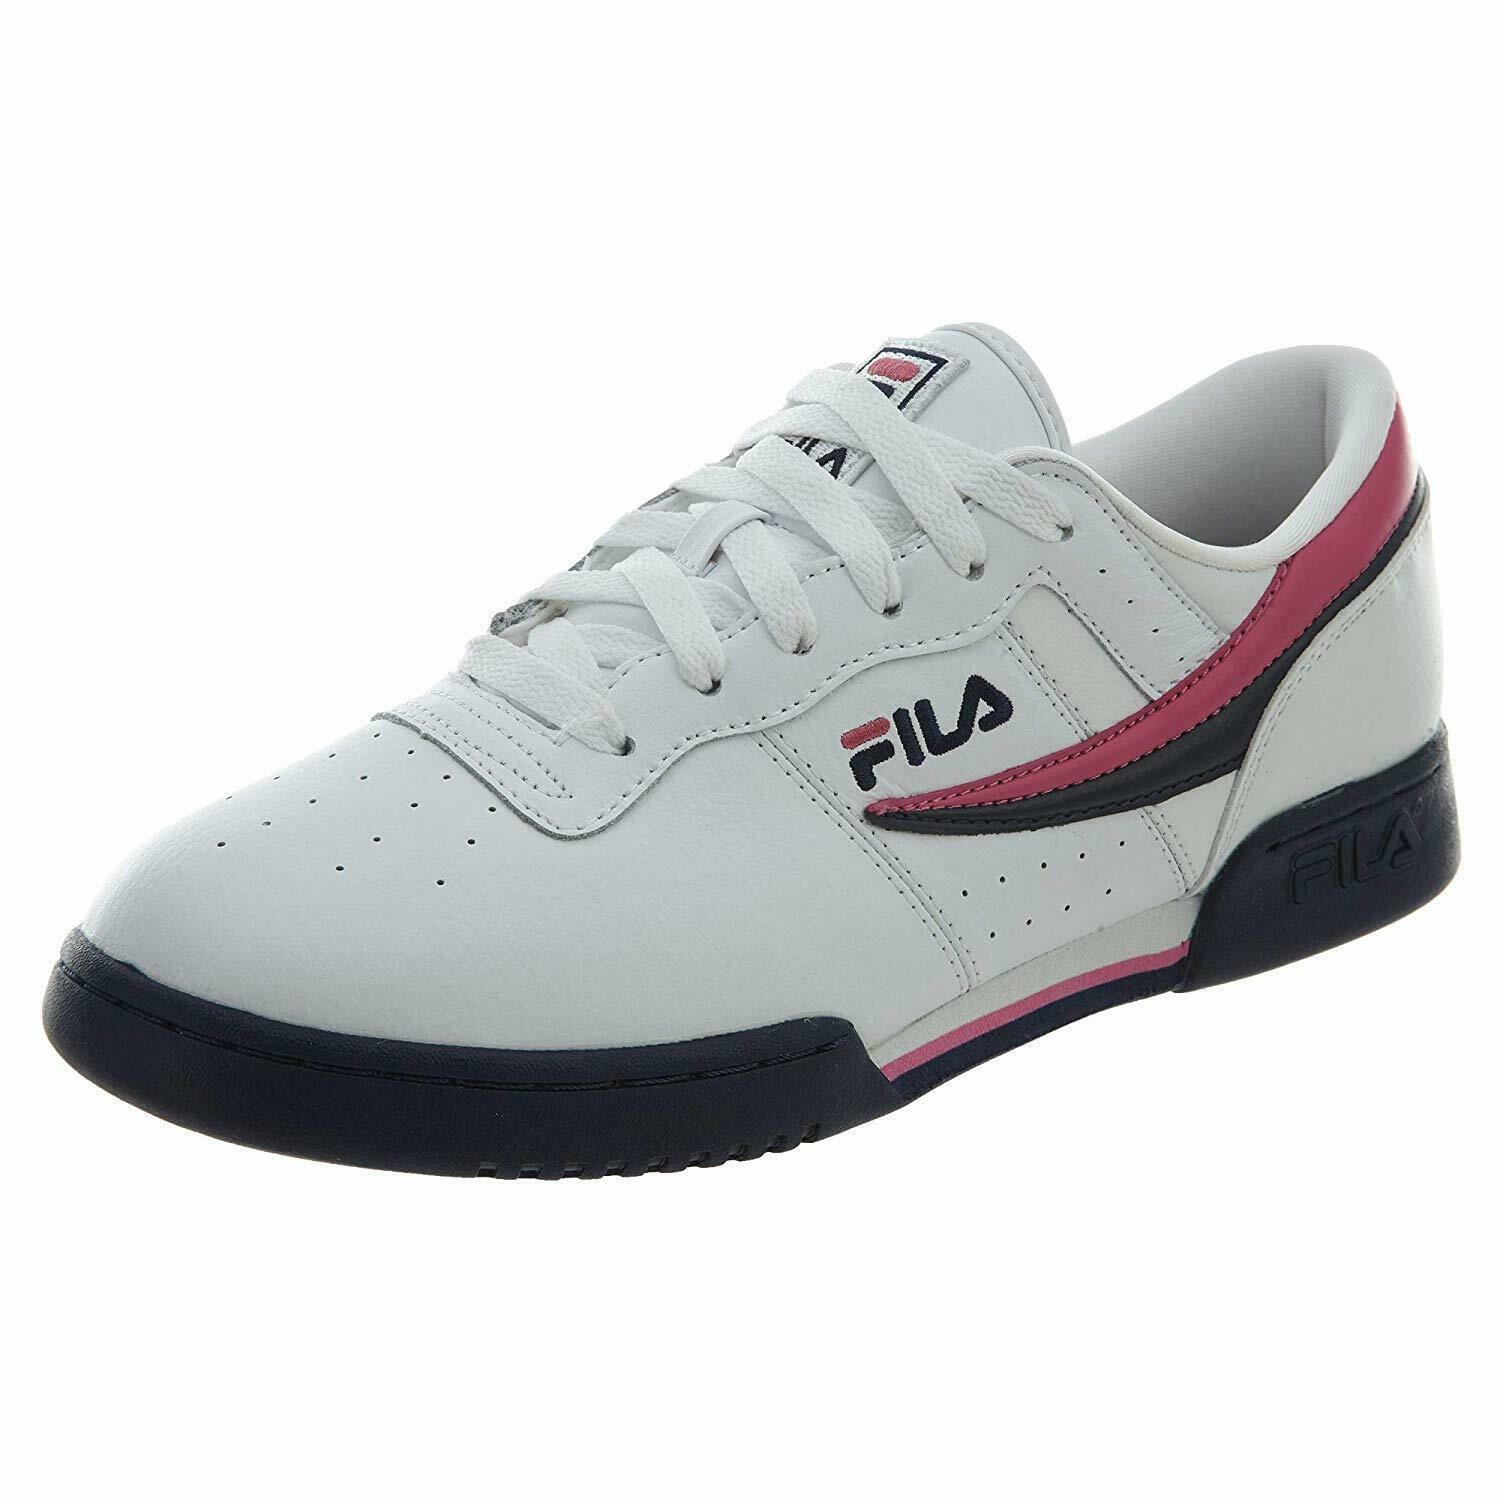 FILA MENS ORIGINAL FITNESS SNEAKERS 1FM00081-148 WHITE NAVY RED